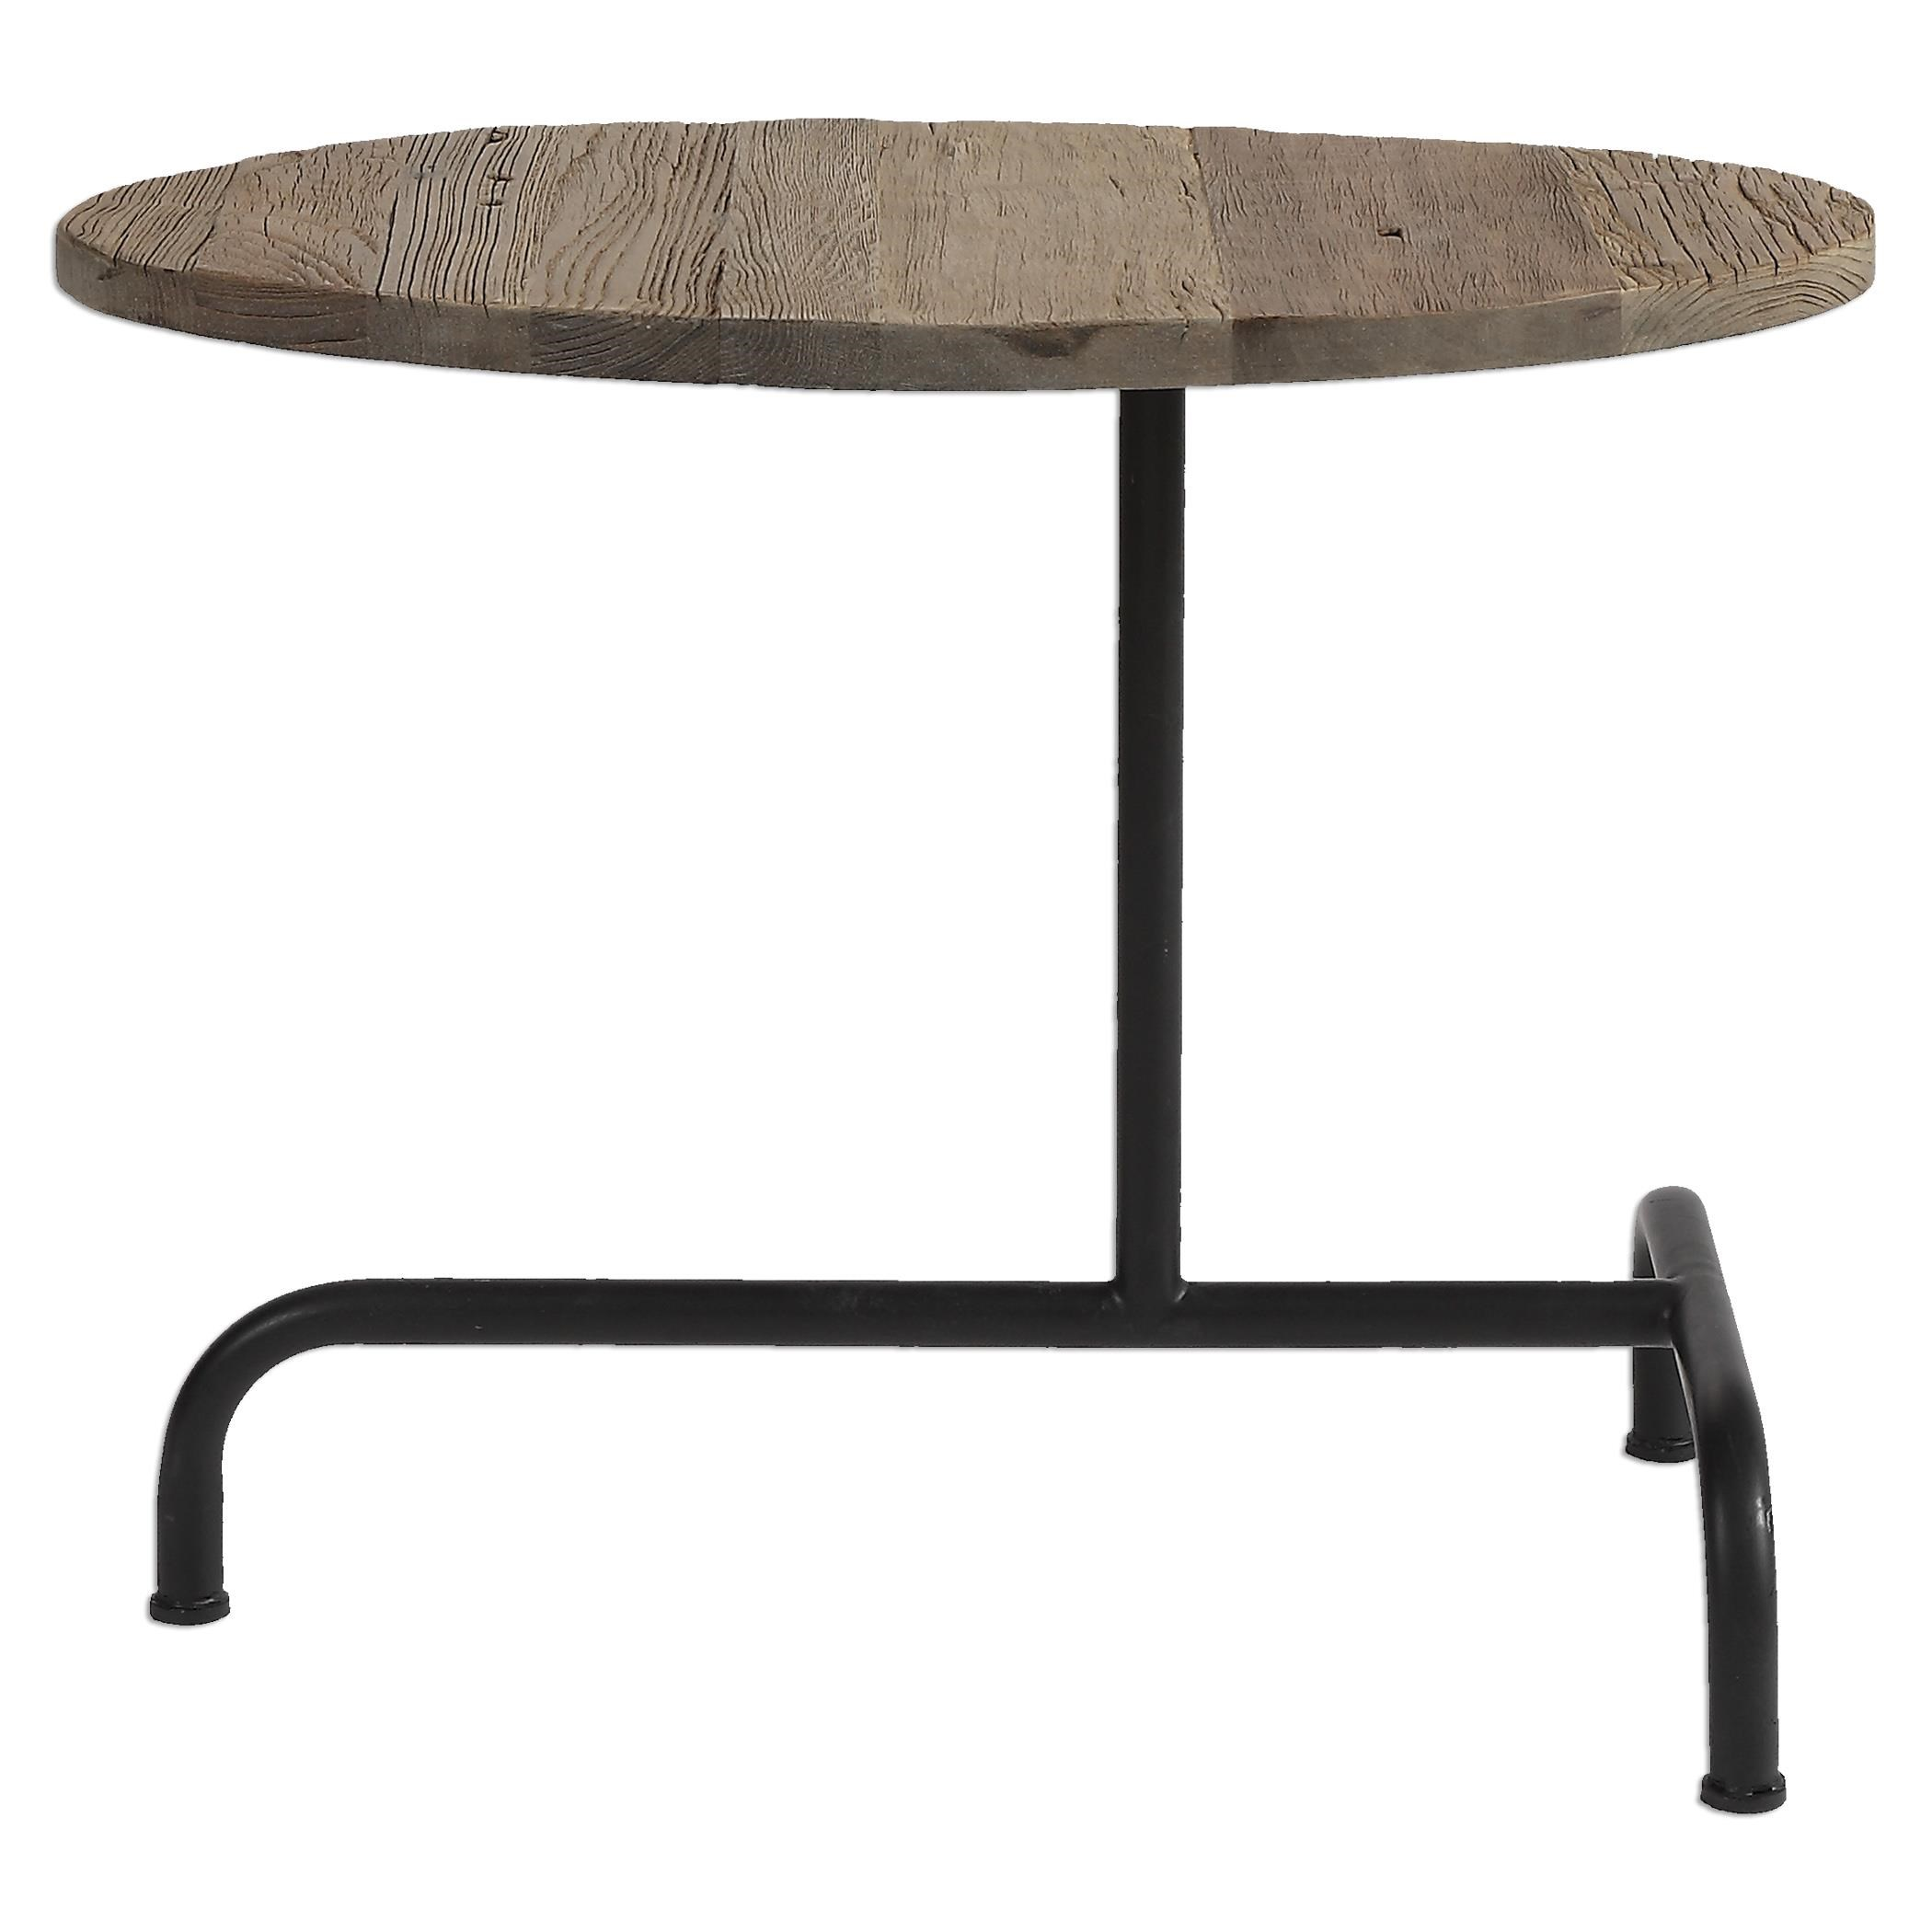 uttermost accent furniture martez industrial accent table uttermost accent furniture 24531 martez industrial accent table      rh   besthfstl